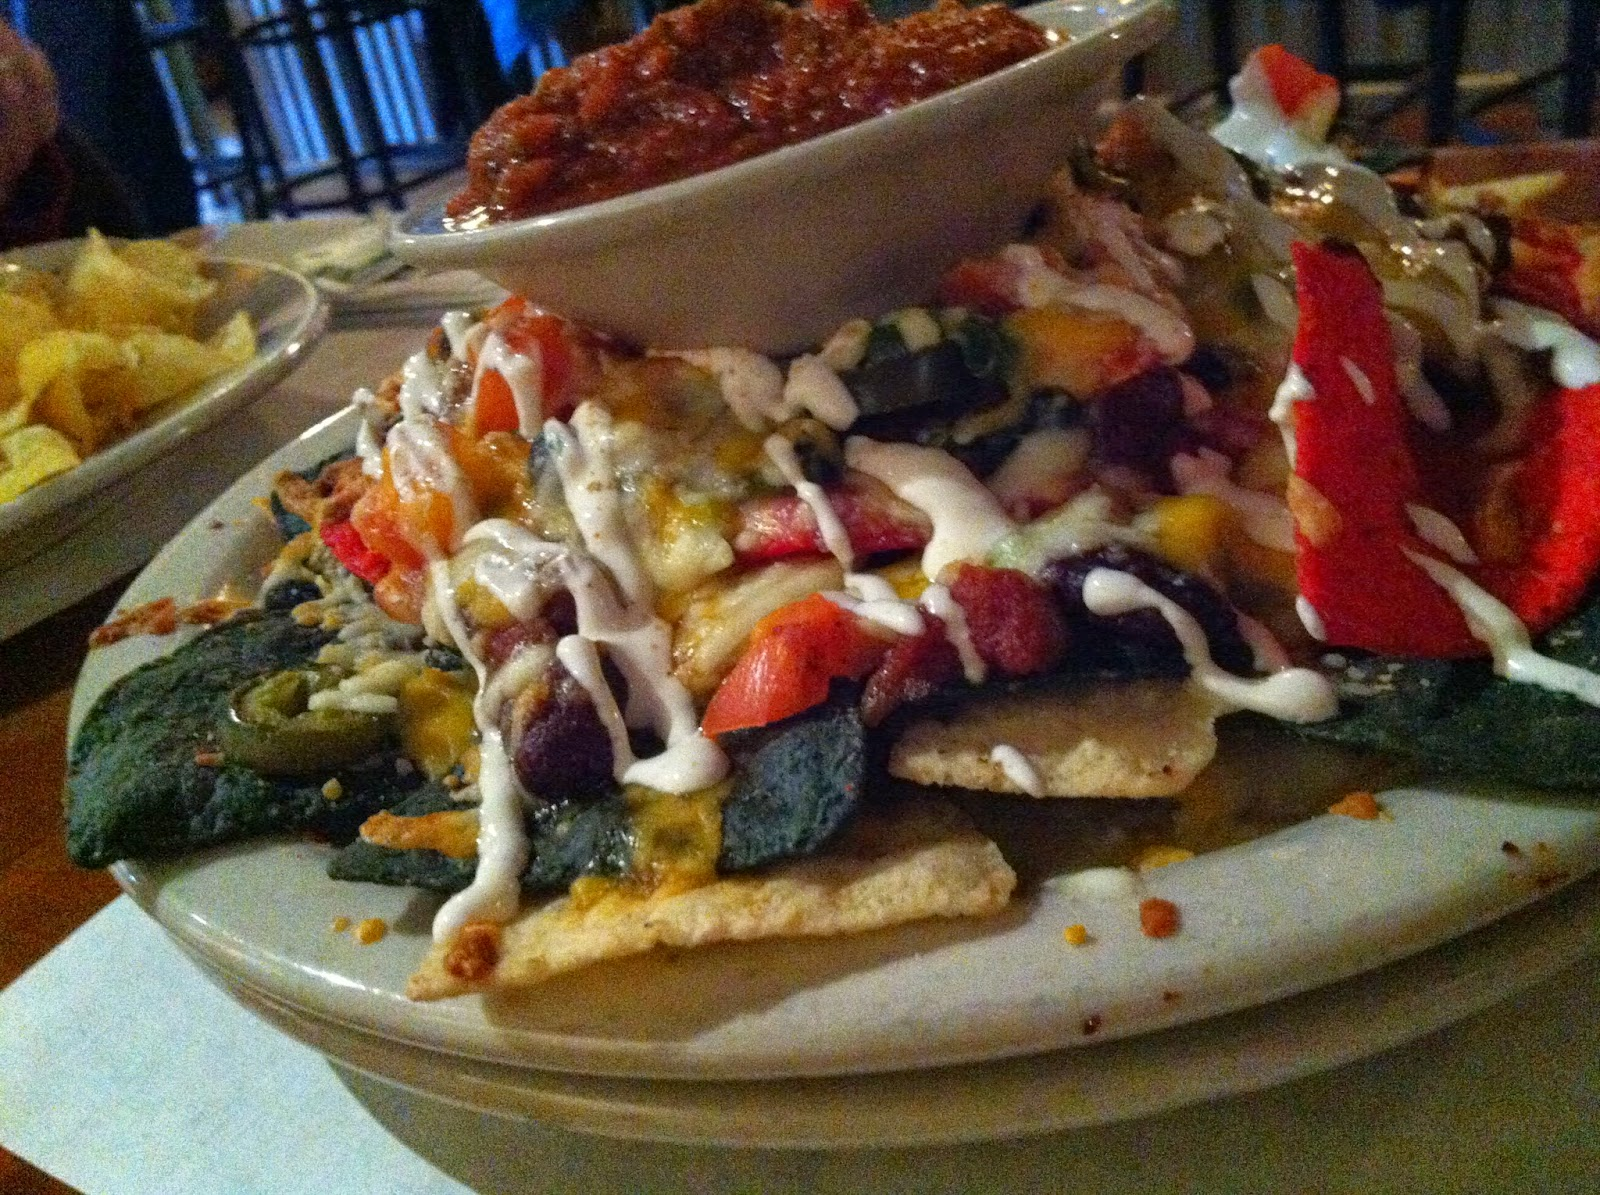 Nachos with Chili at Dogfish Bar and Grille by Don Taylor | CC BY CA